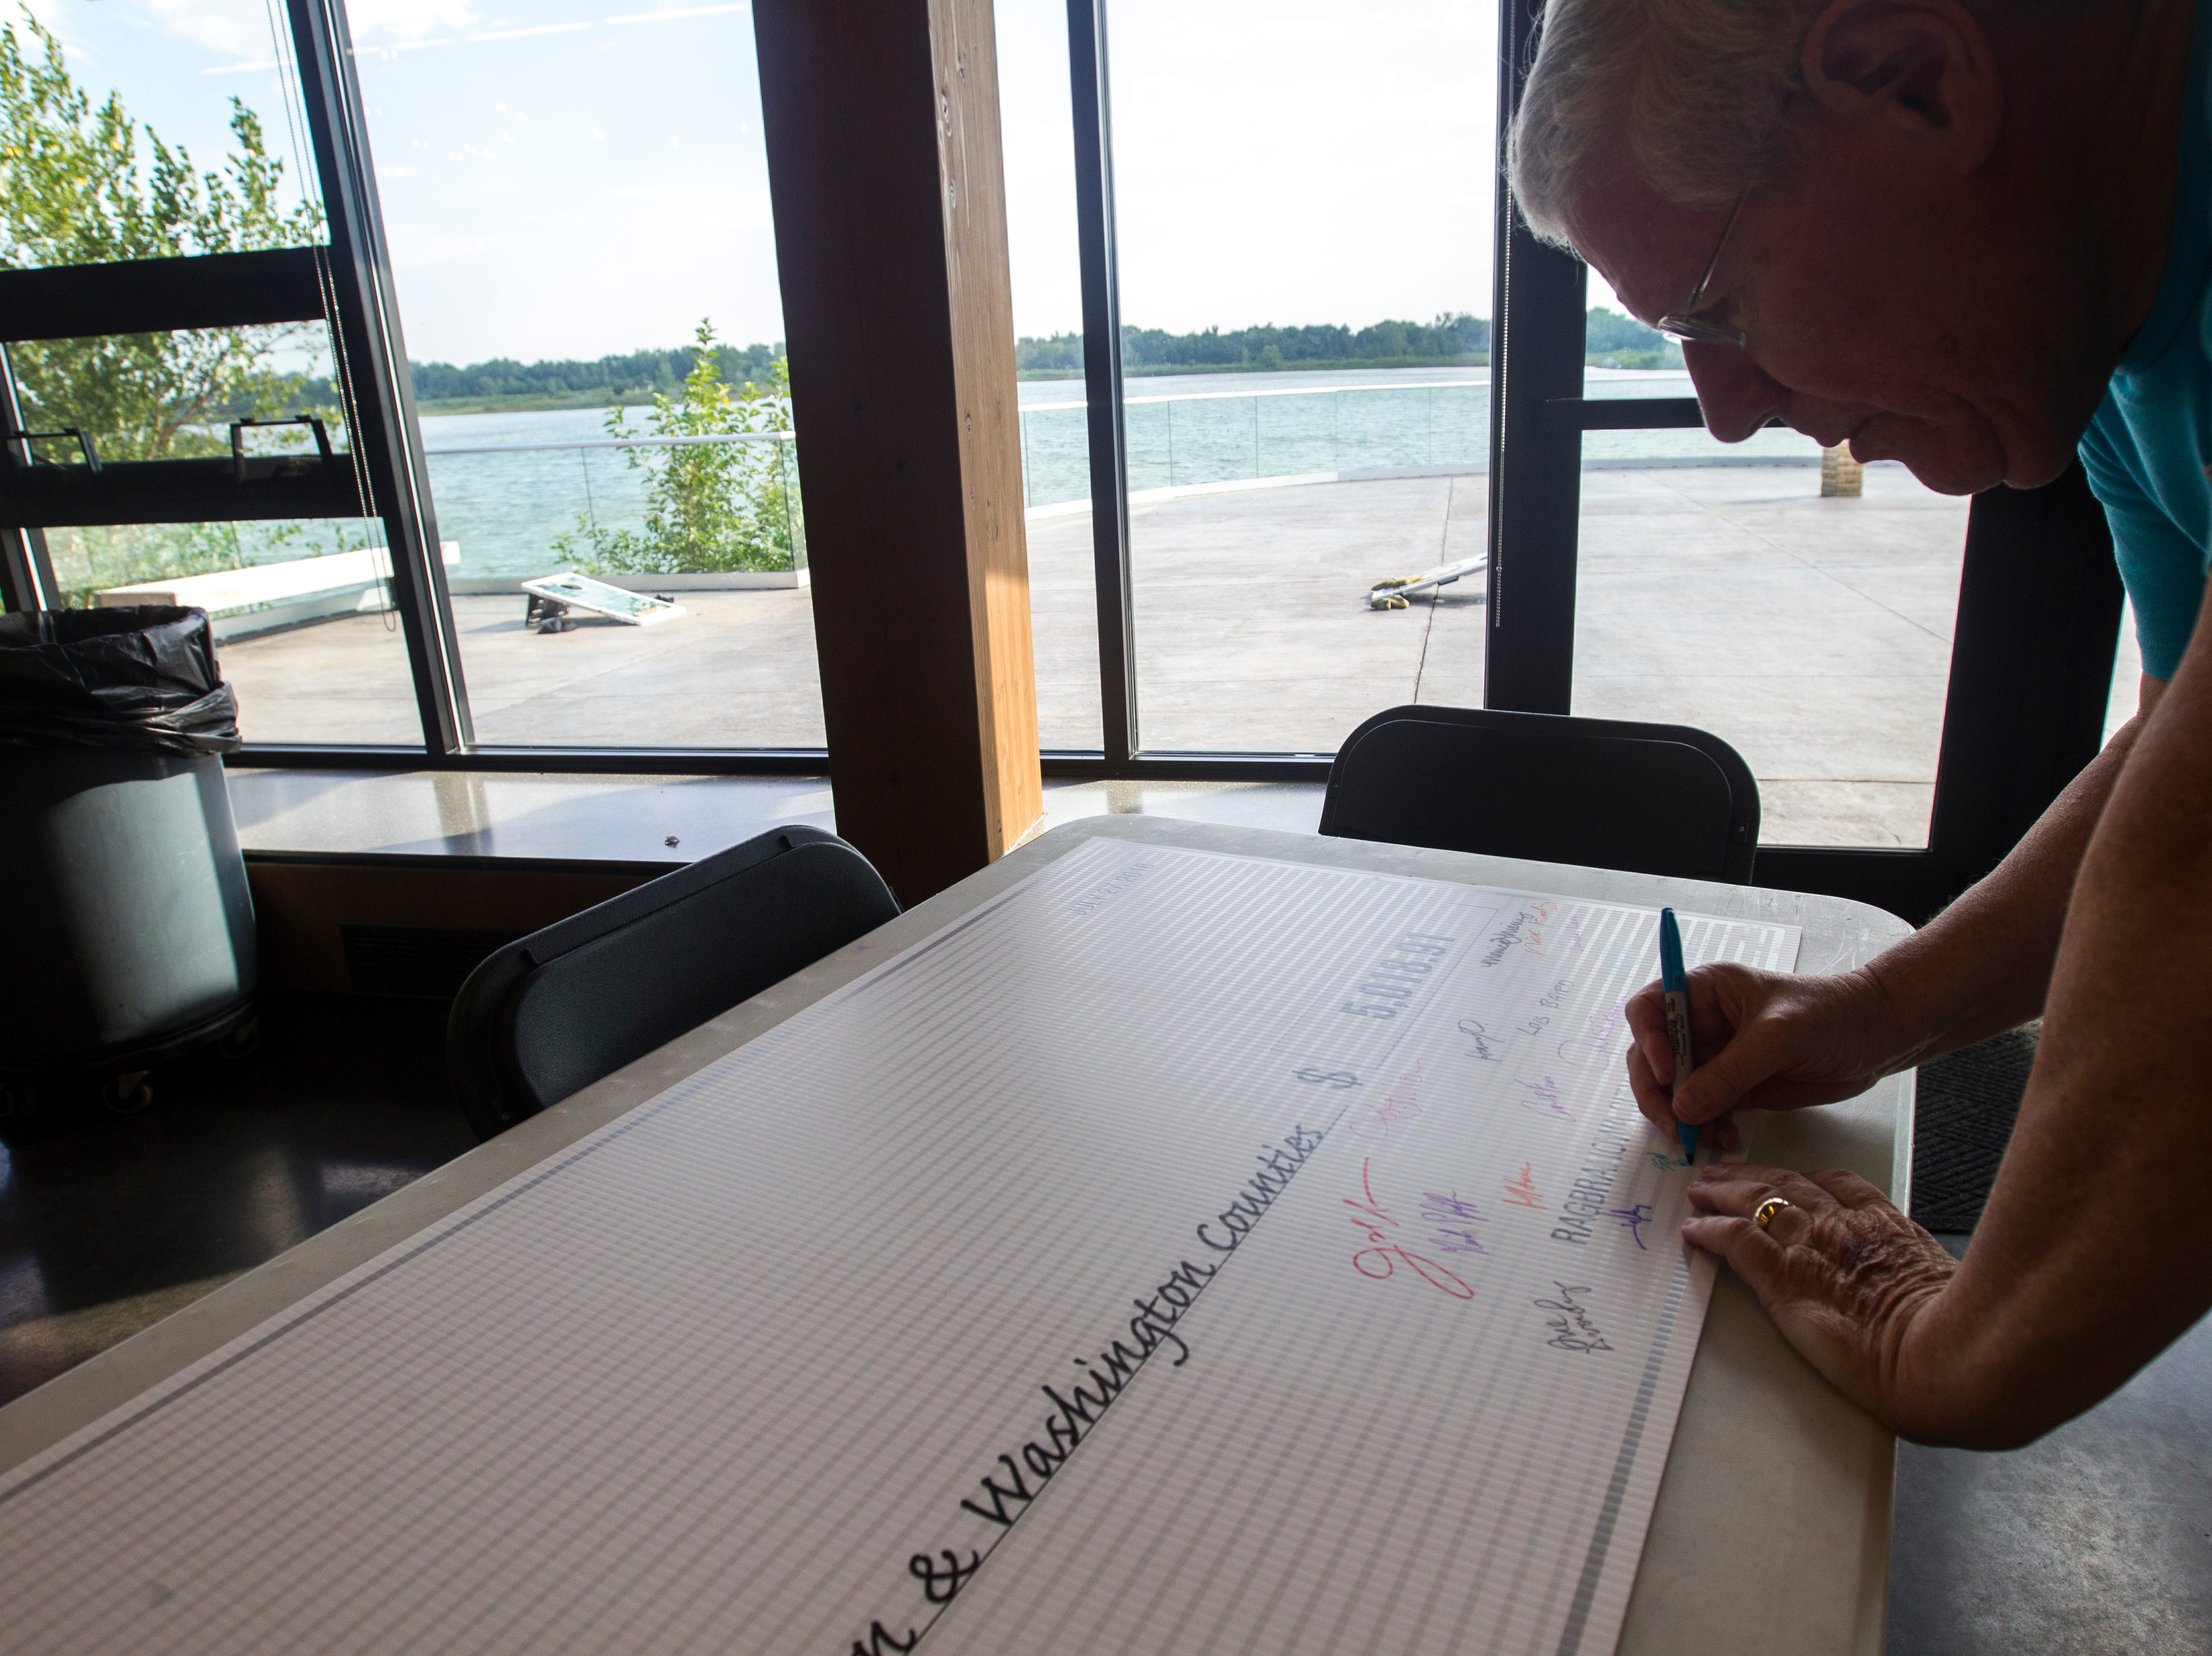 Iowa State Sen. Bob Dvorsky (D-Coralville) signs a check for the United Way of Johnson and Washington Counties during an event for Iowa City RAGBRAI volunteers on Monday, Aug. 27, 2018, inside the Park Lodge at Terry Trueblood Recreation Area in Iowa City.